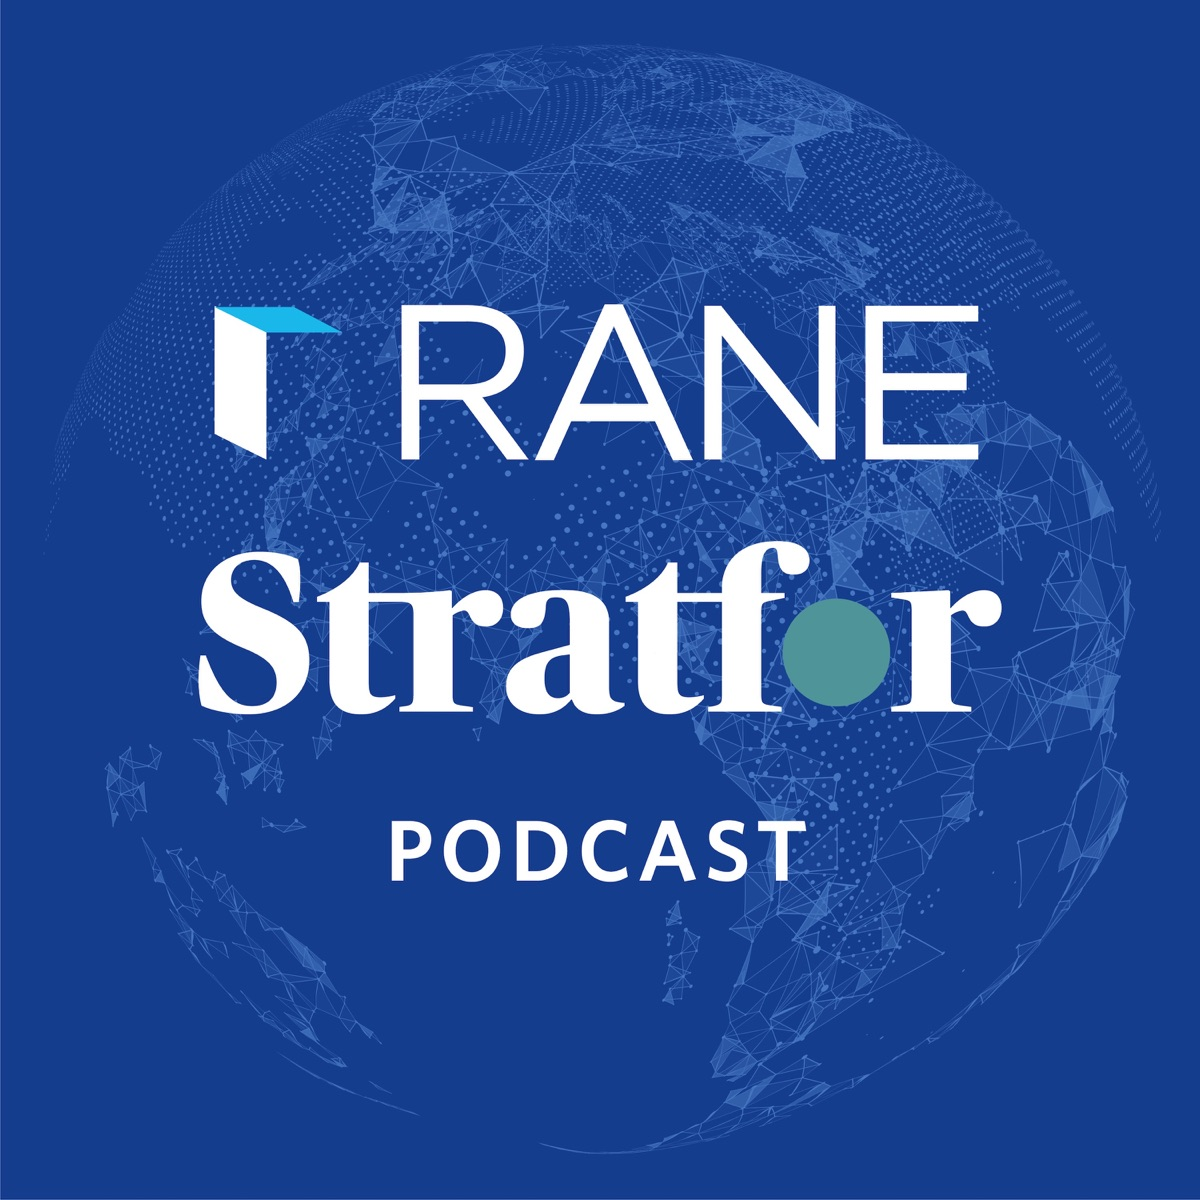 RANE Podcast with Stratfor